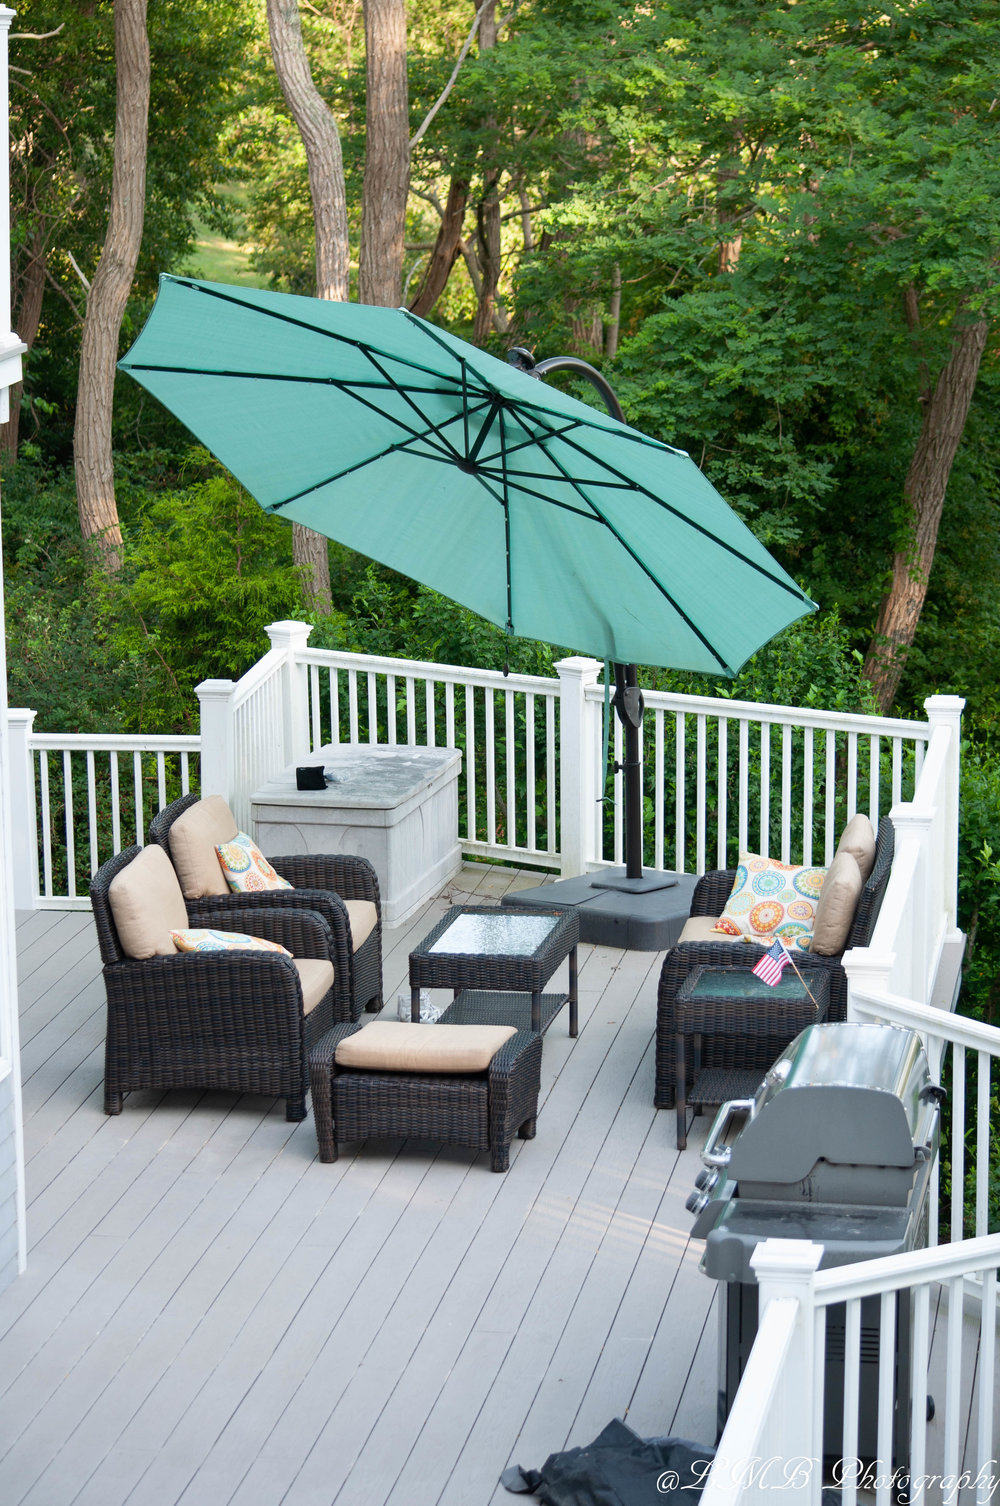 We love to relax on our back deck